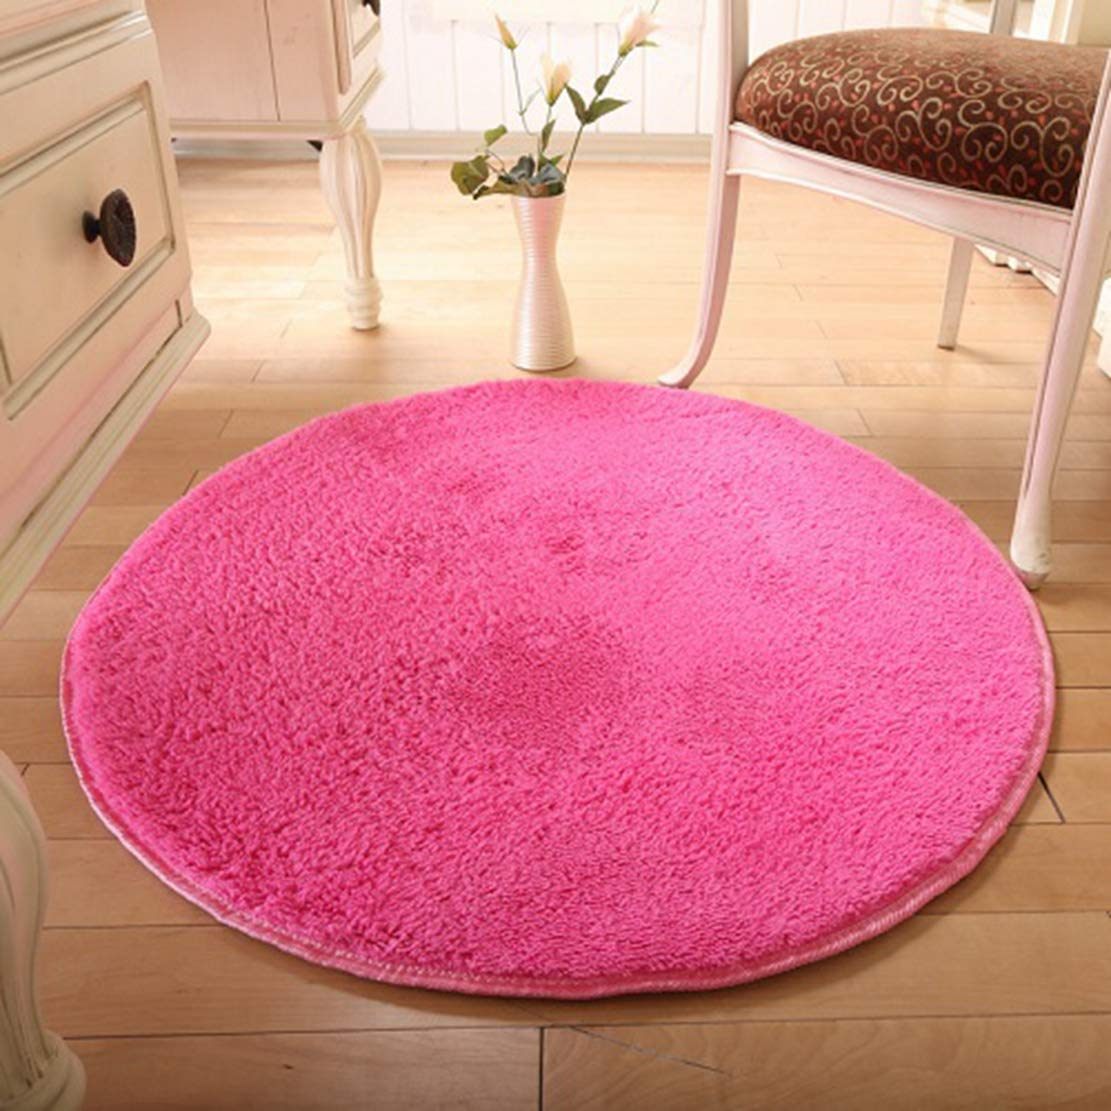 Amazon.com: 6-Size Solid Carpet Big Round Thicker Door ...